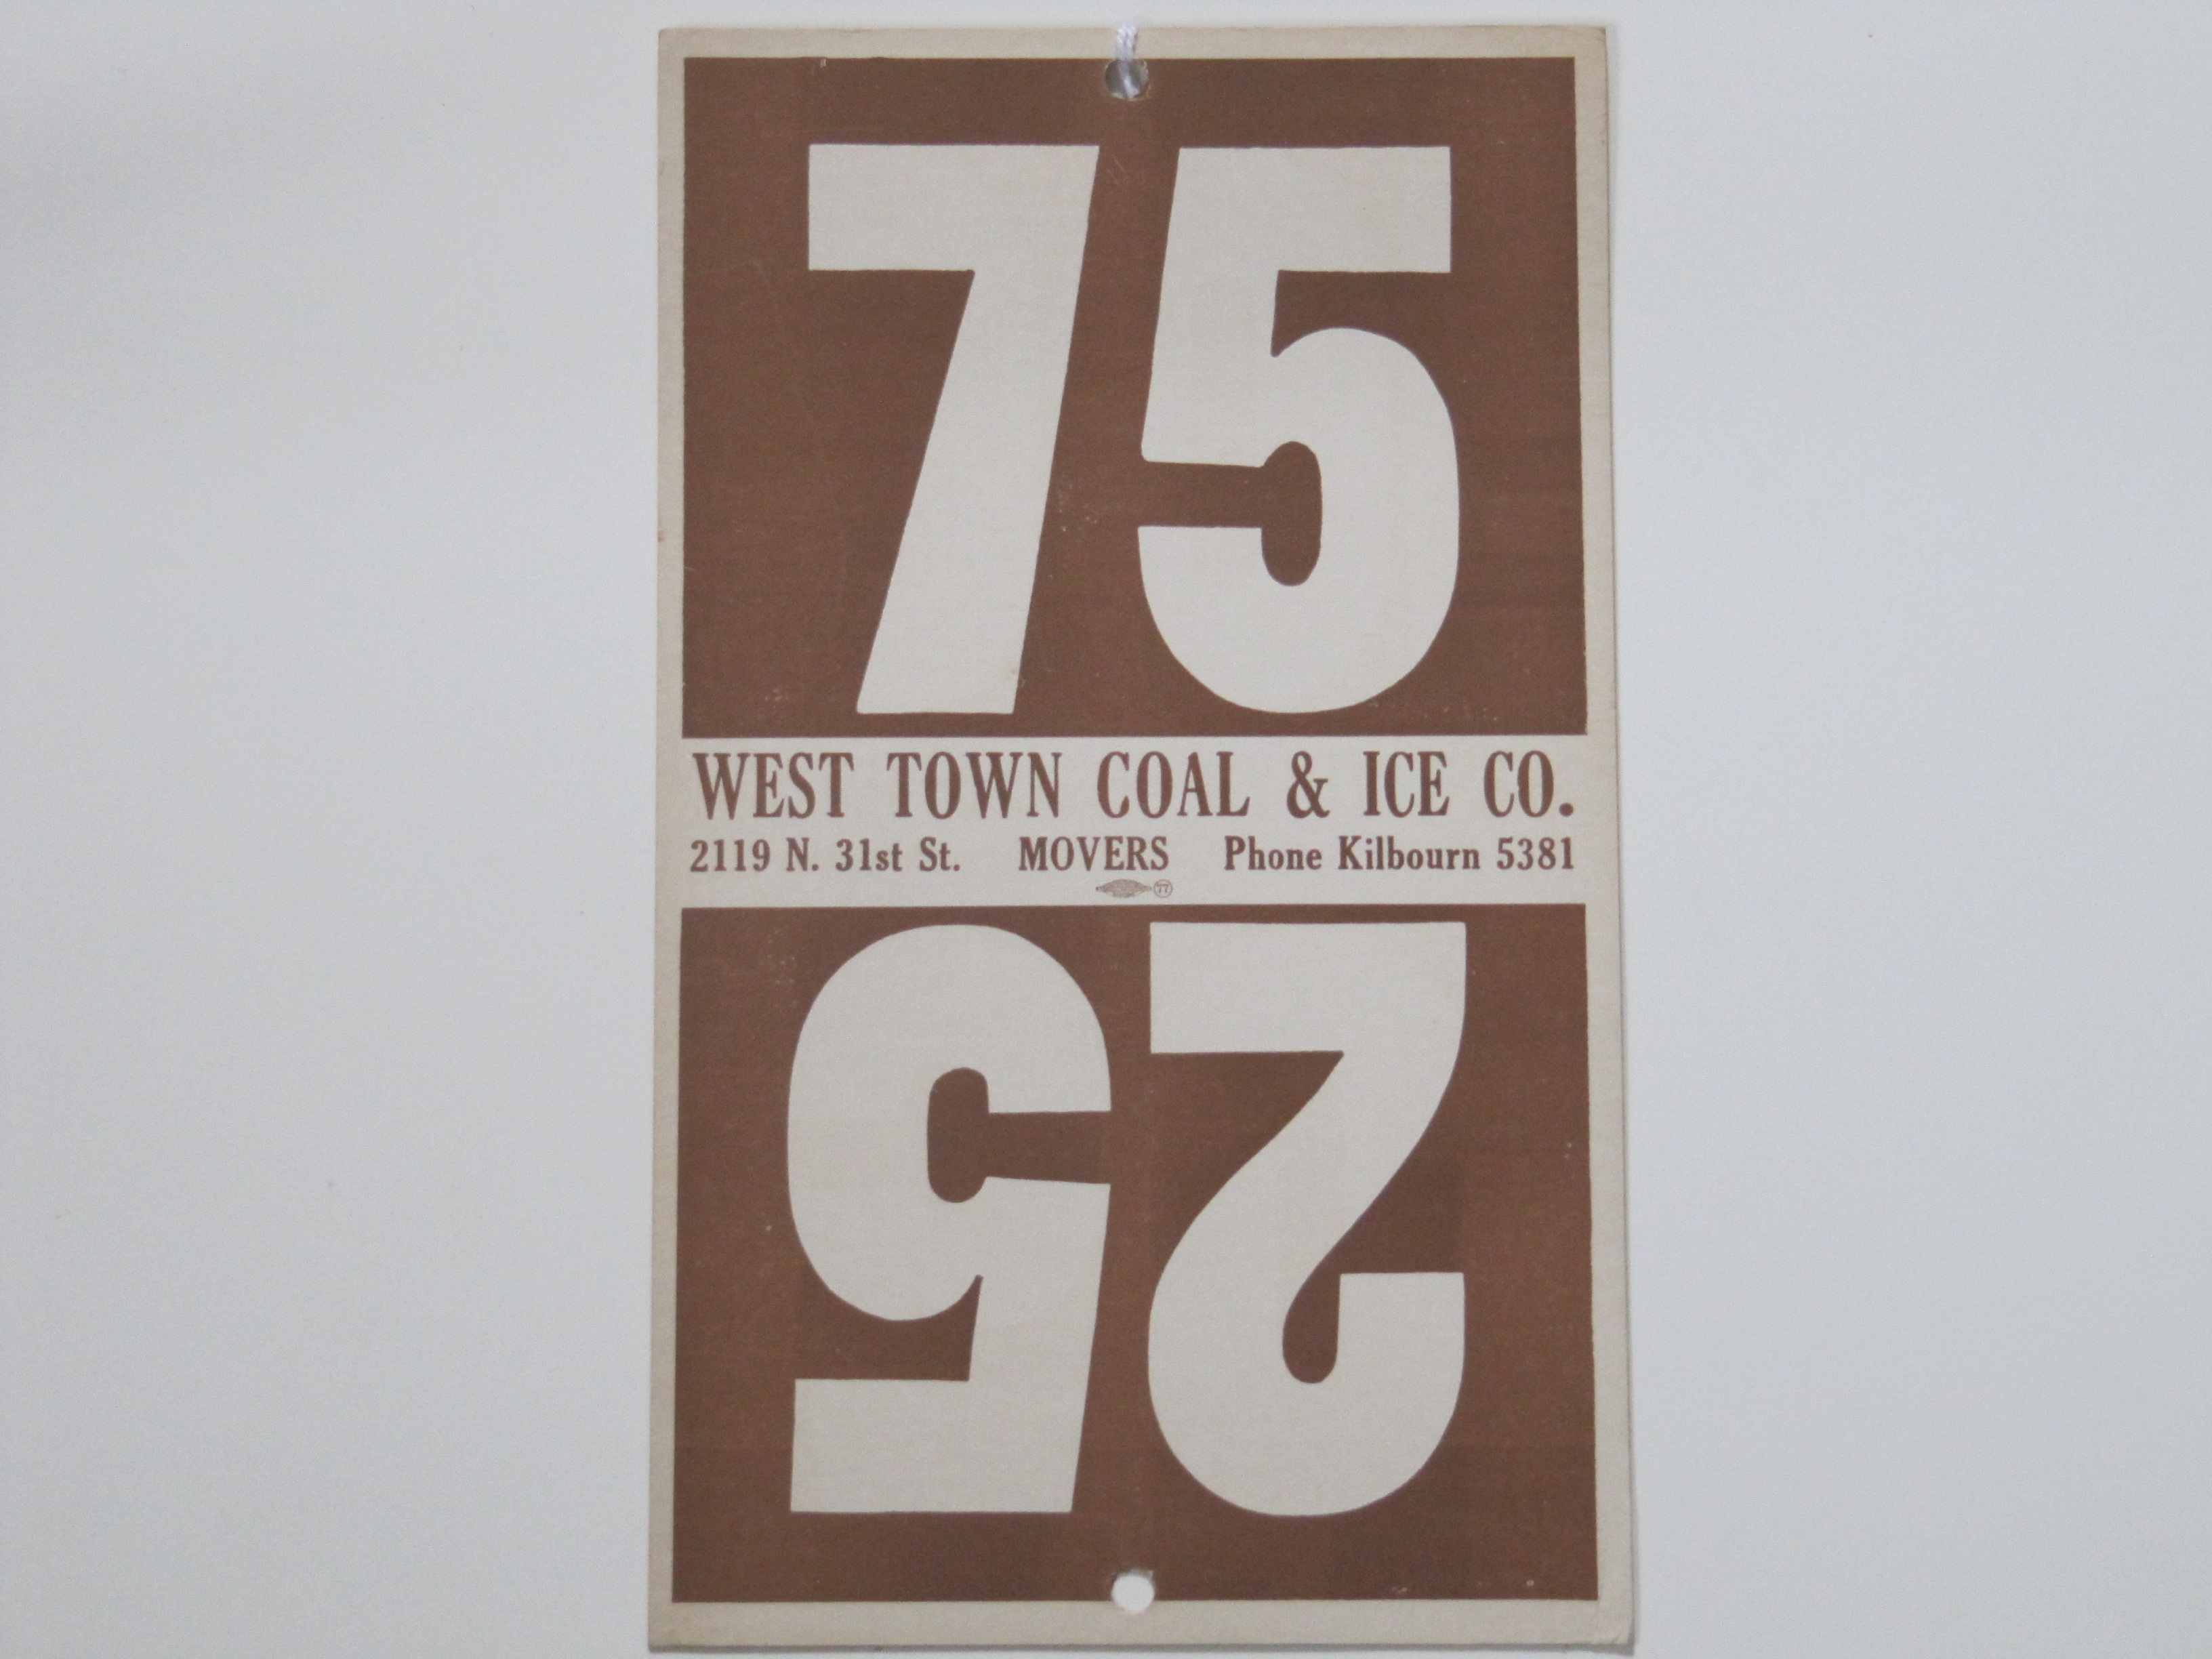 West Town Coal & Ice Co.